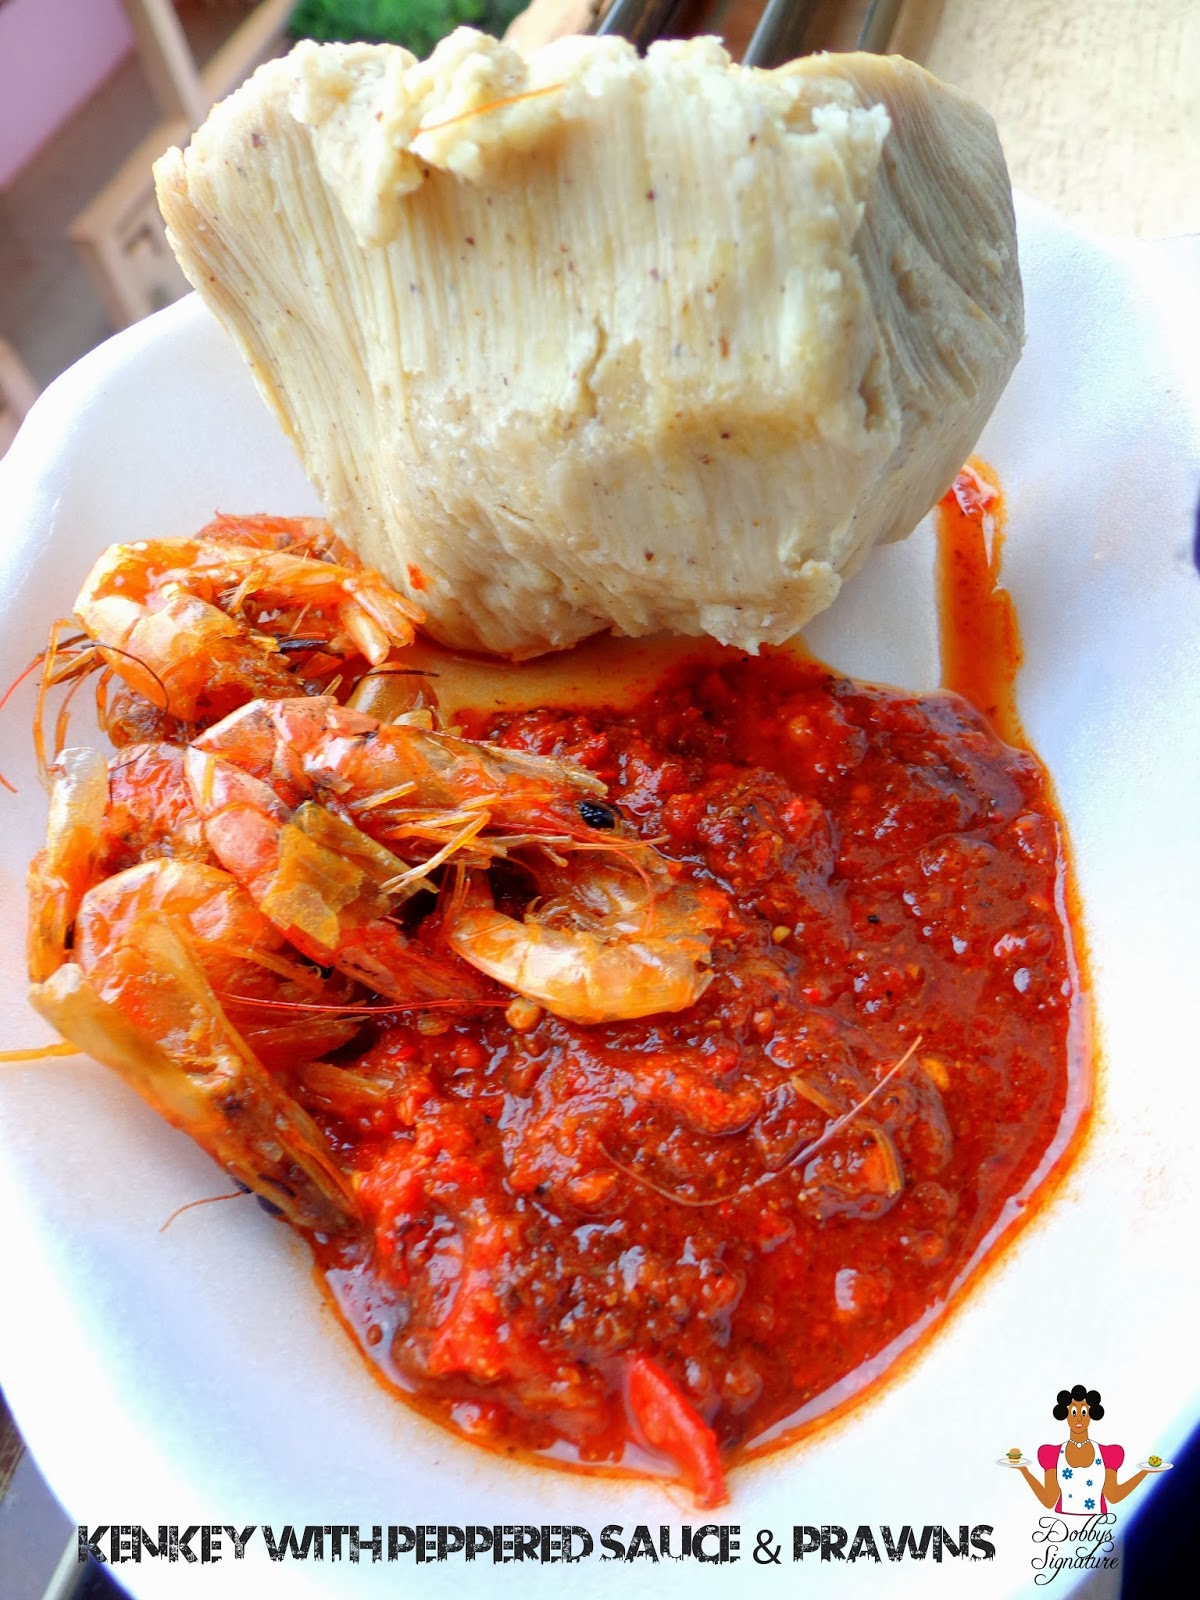 Dobbys signature nigerian food blog i nigerian food for Authentic african cuisine from ghana